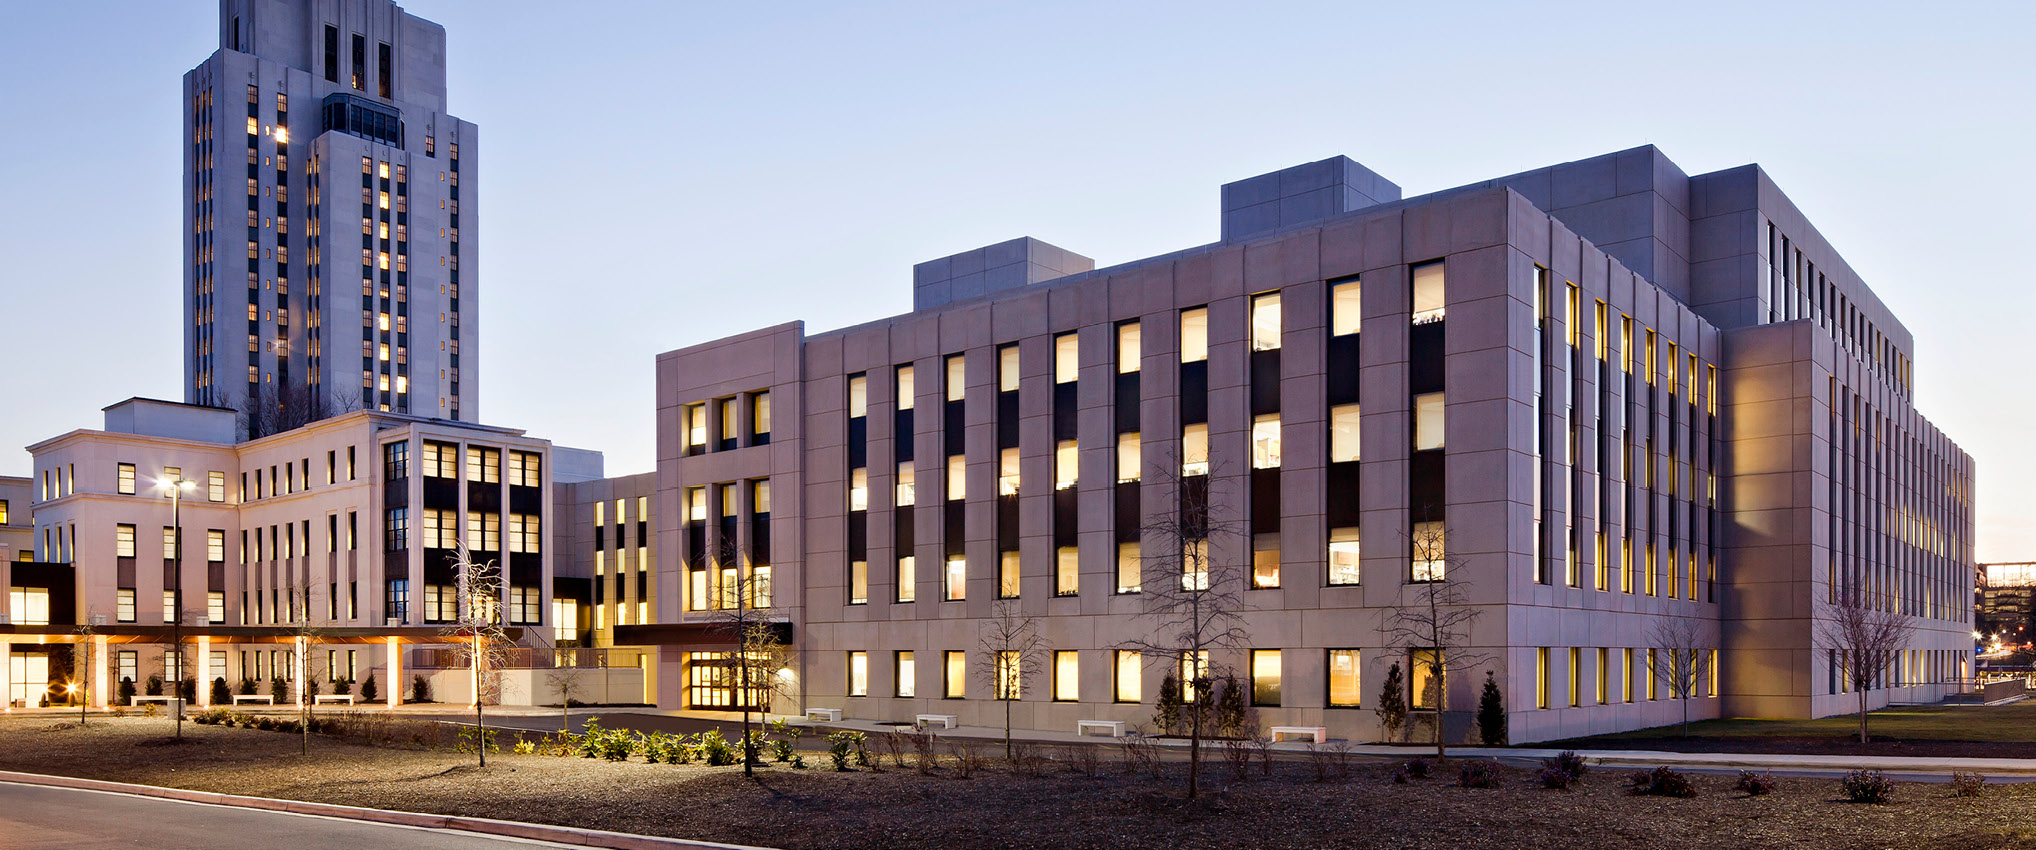 HKS Receives 2012 Design-Build Merit Award for Healthcare Facilities for Walter Reed National Military Medical Center